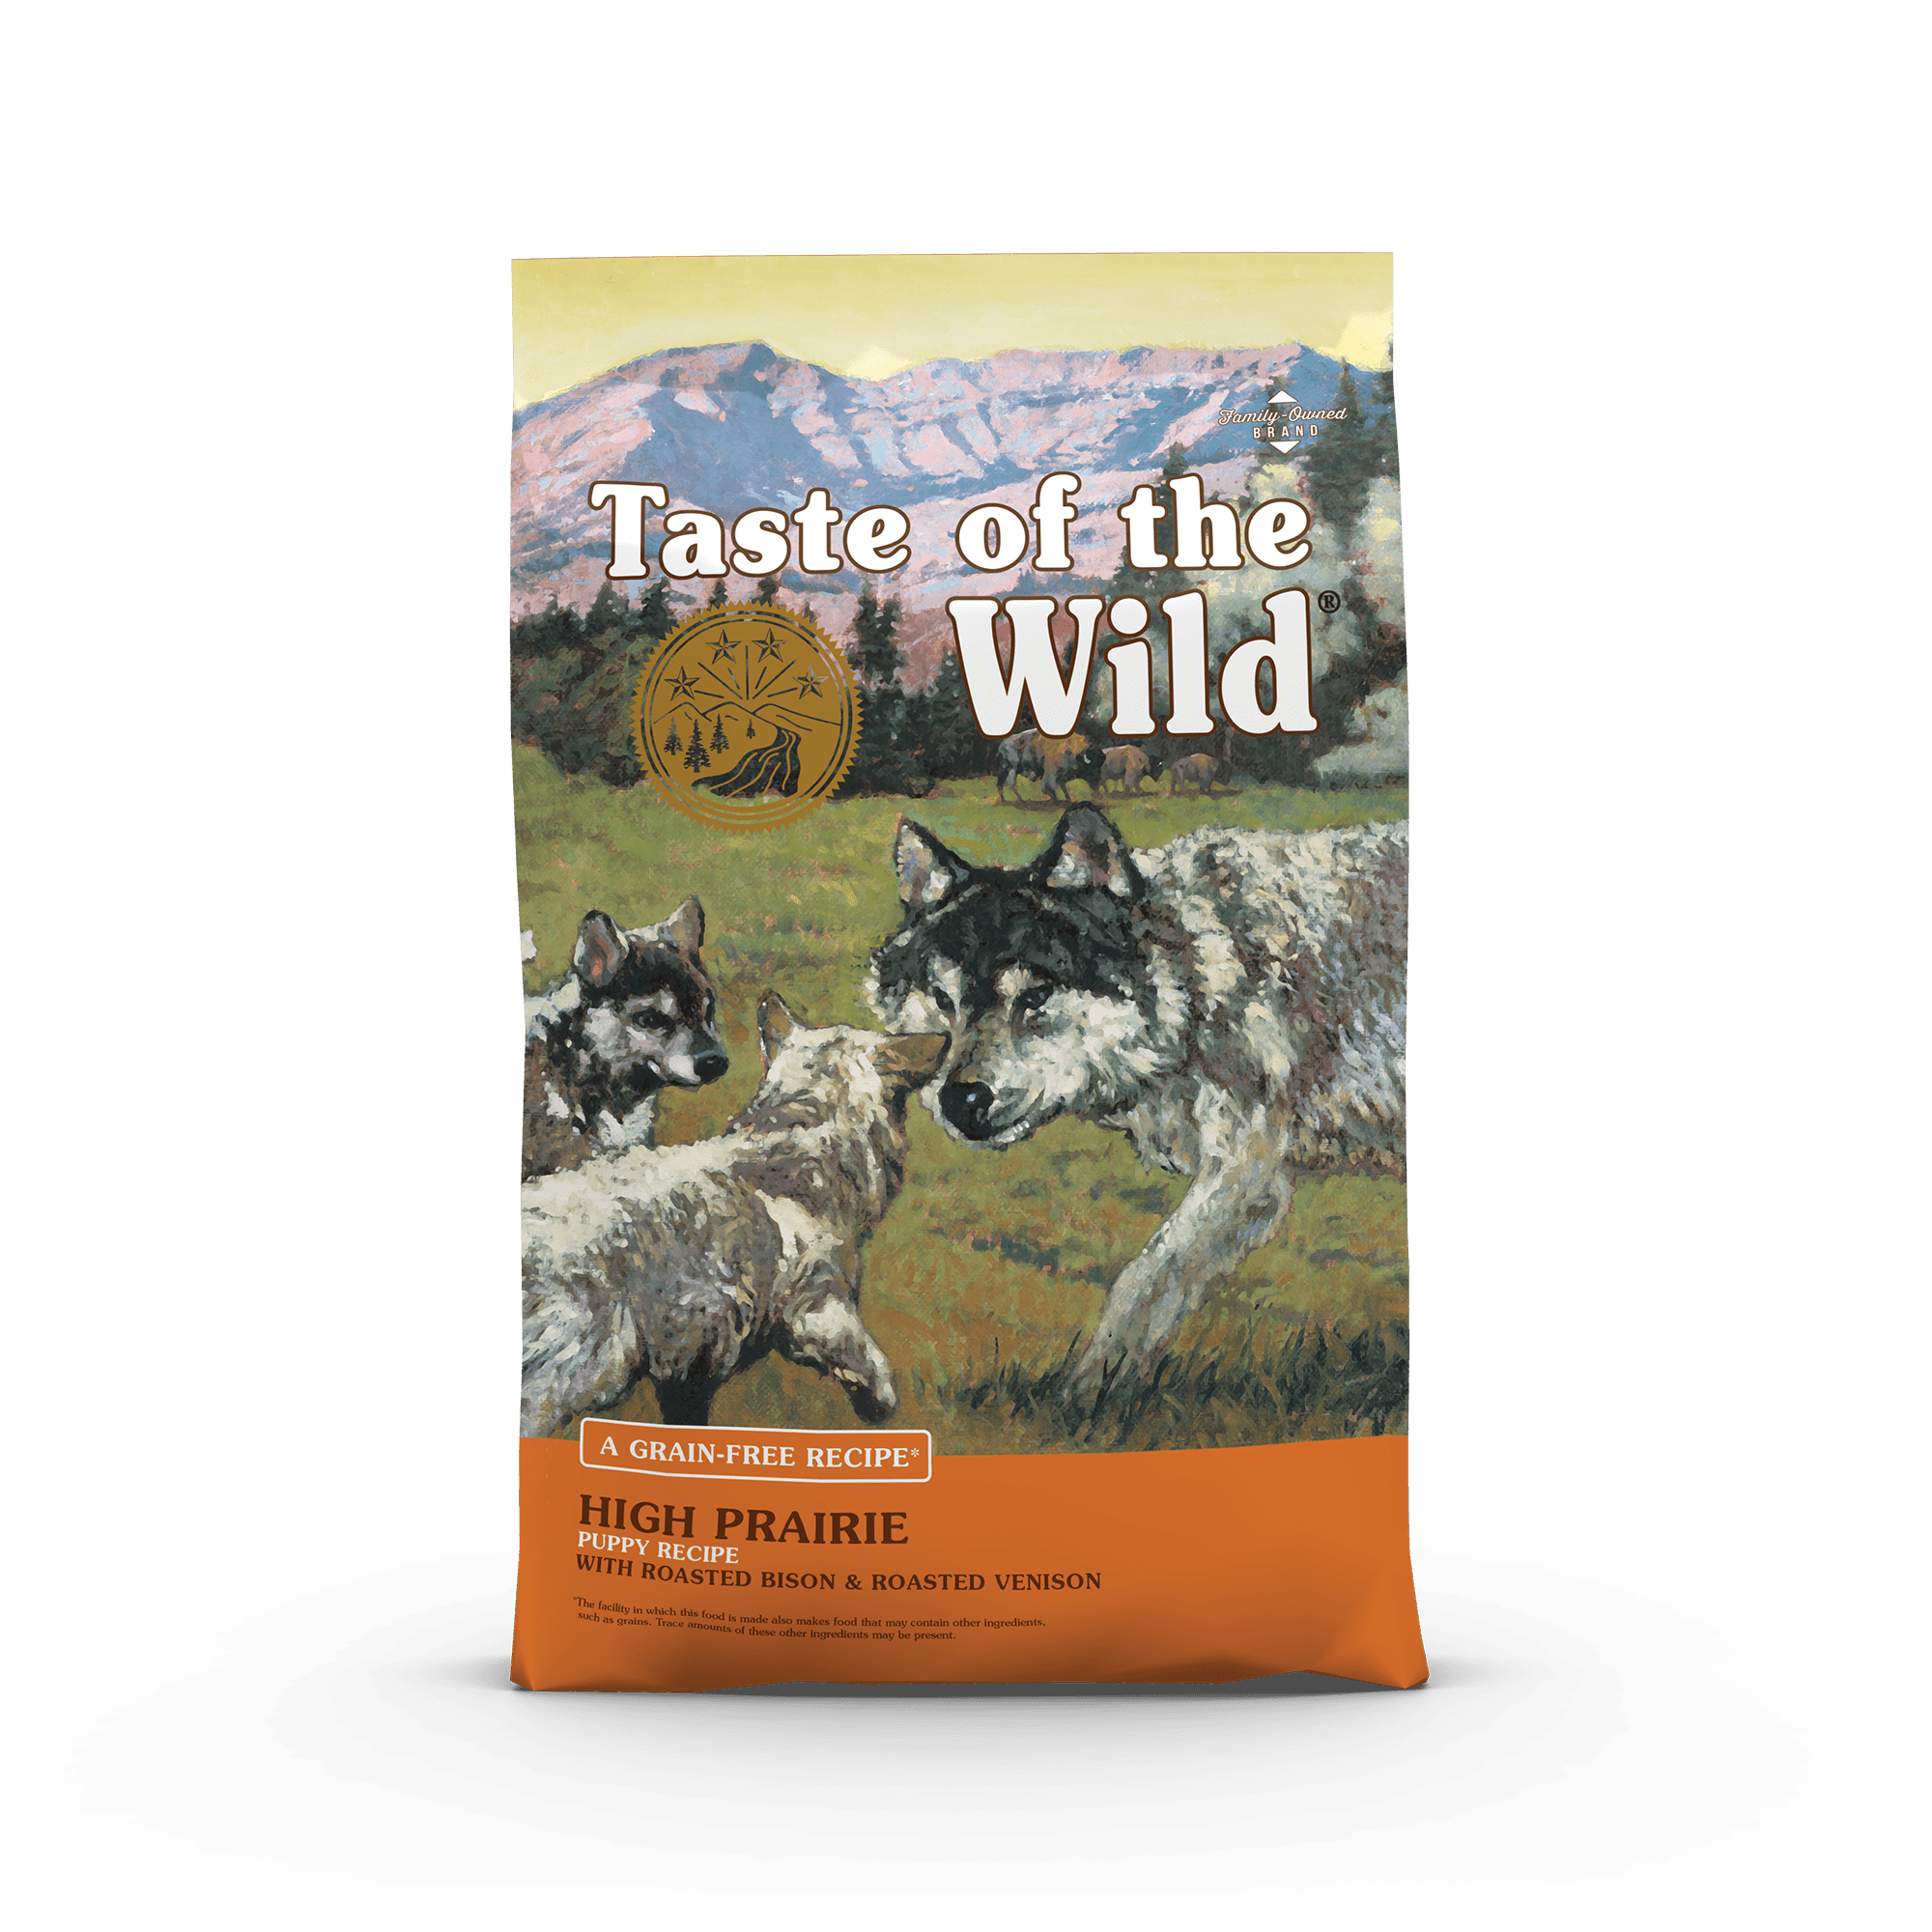 Taste Of The Wild Kibble Grain Free Dog Food High Prairie Puppy